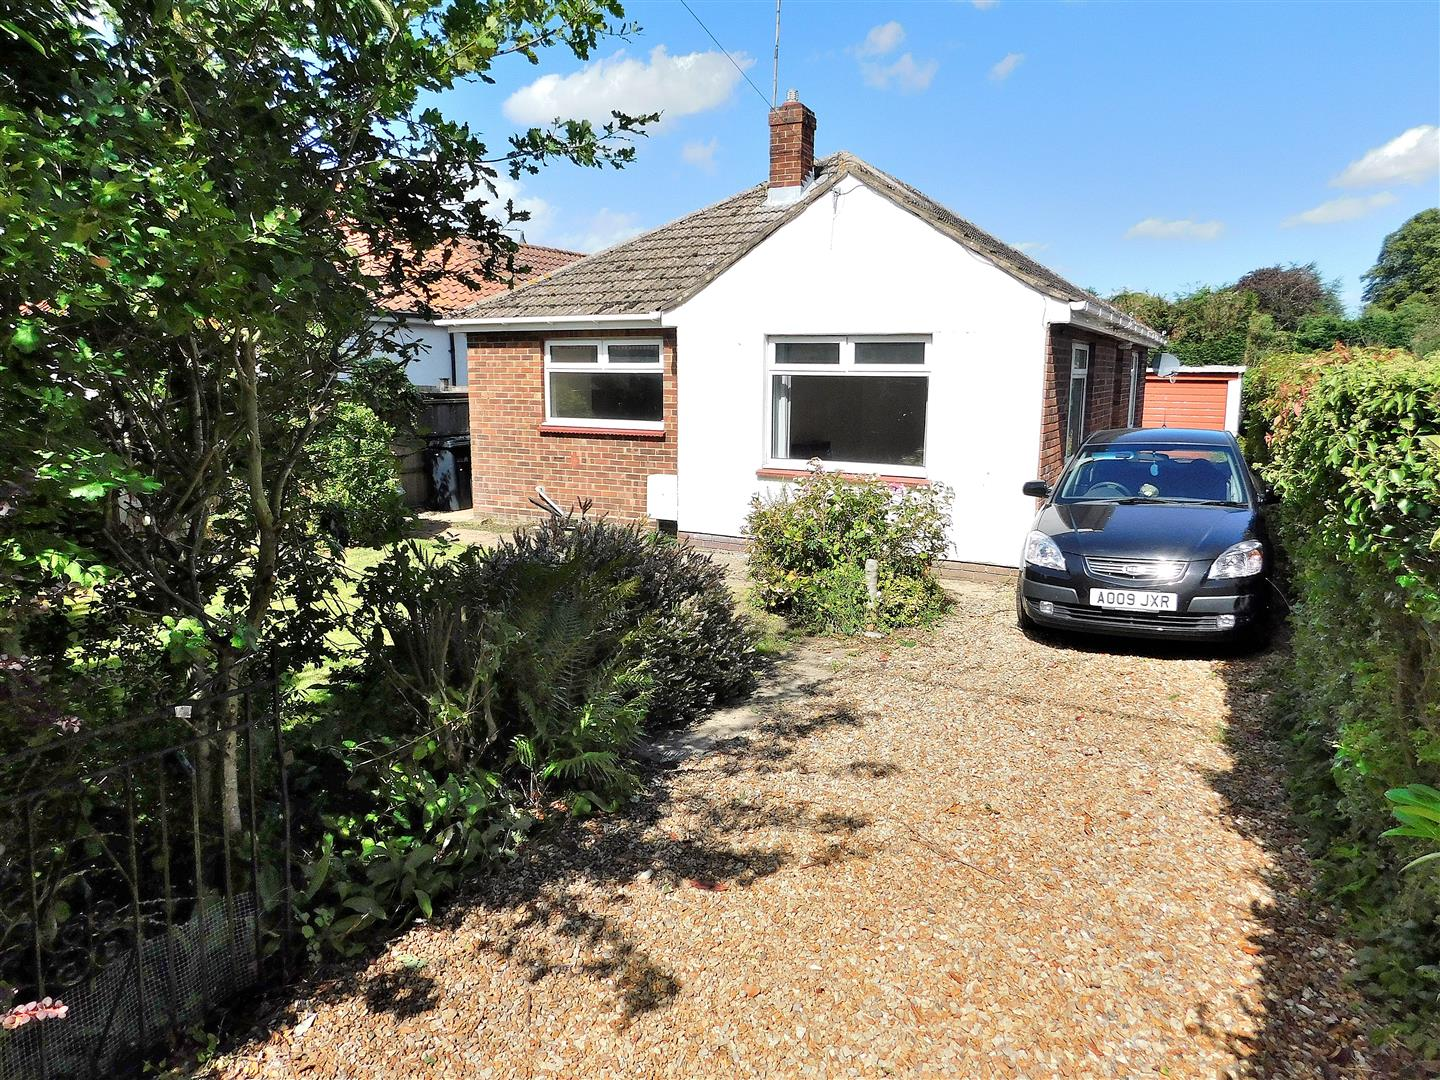 2 bed detached bungalow for sale in King's Lynn, PE30 3AY  - Property Image 1